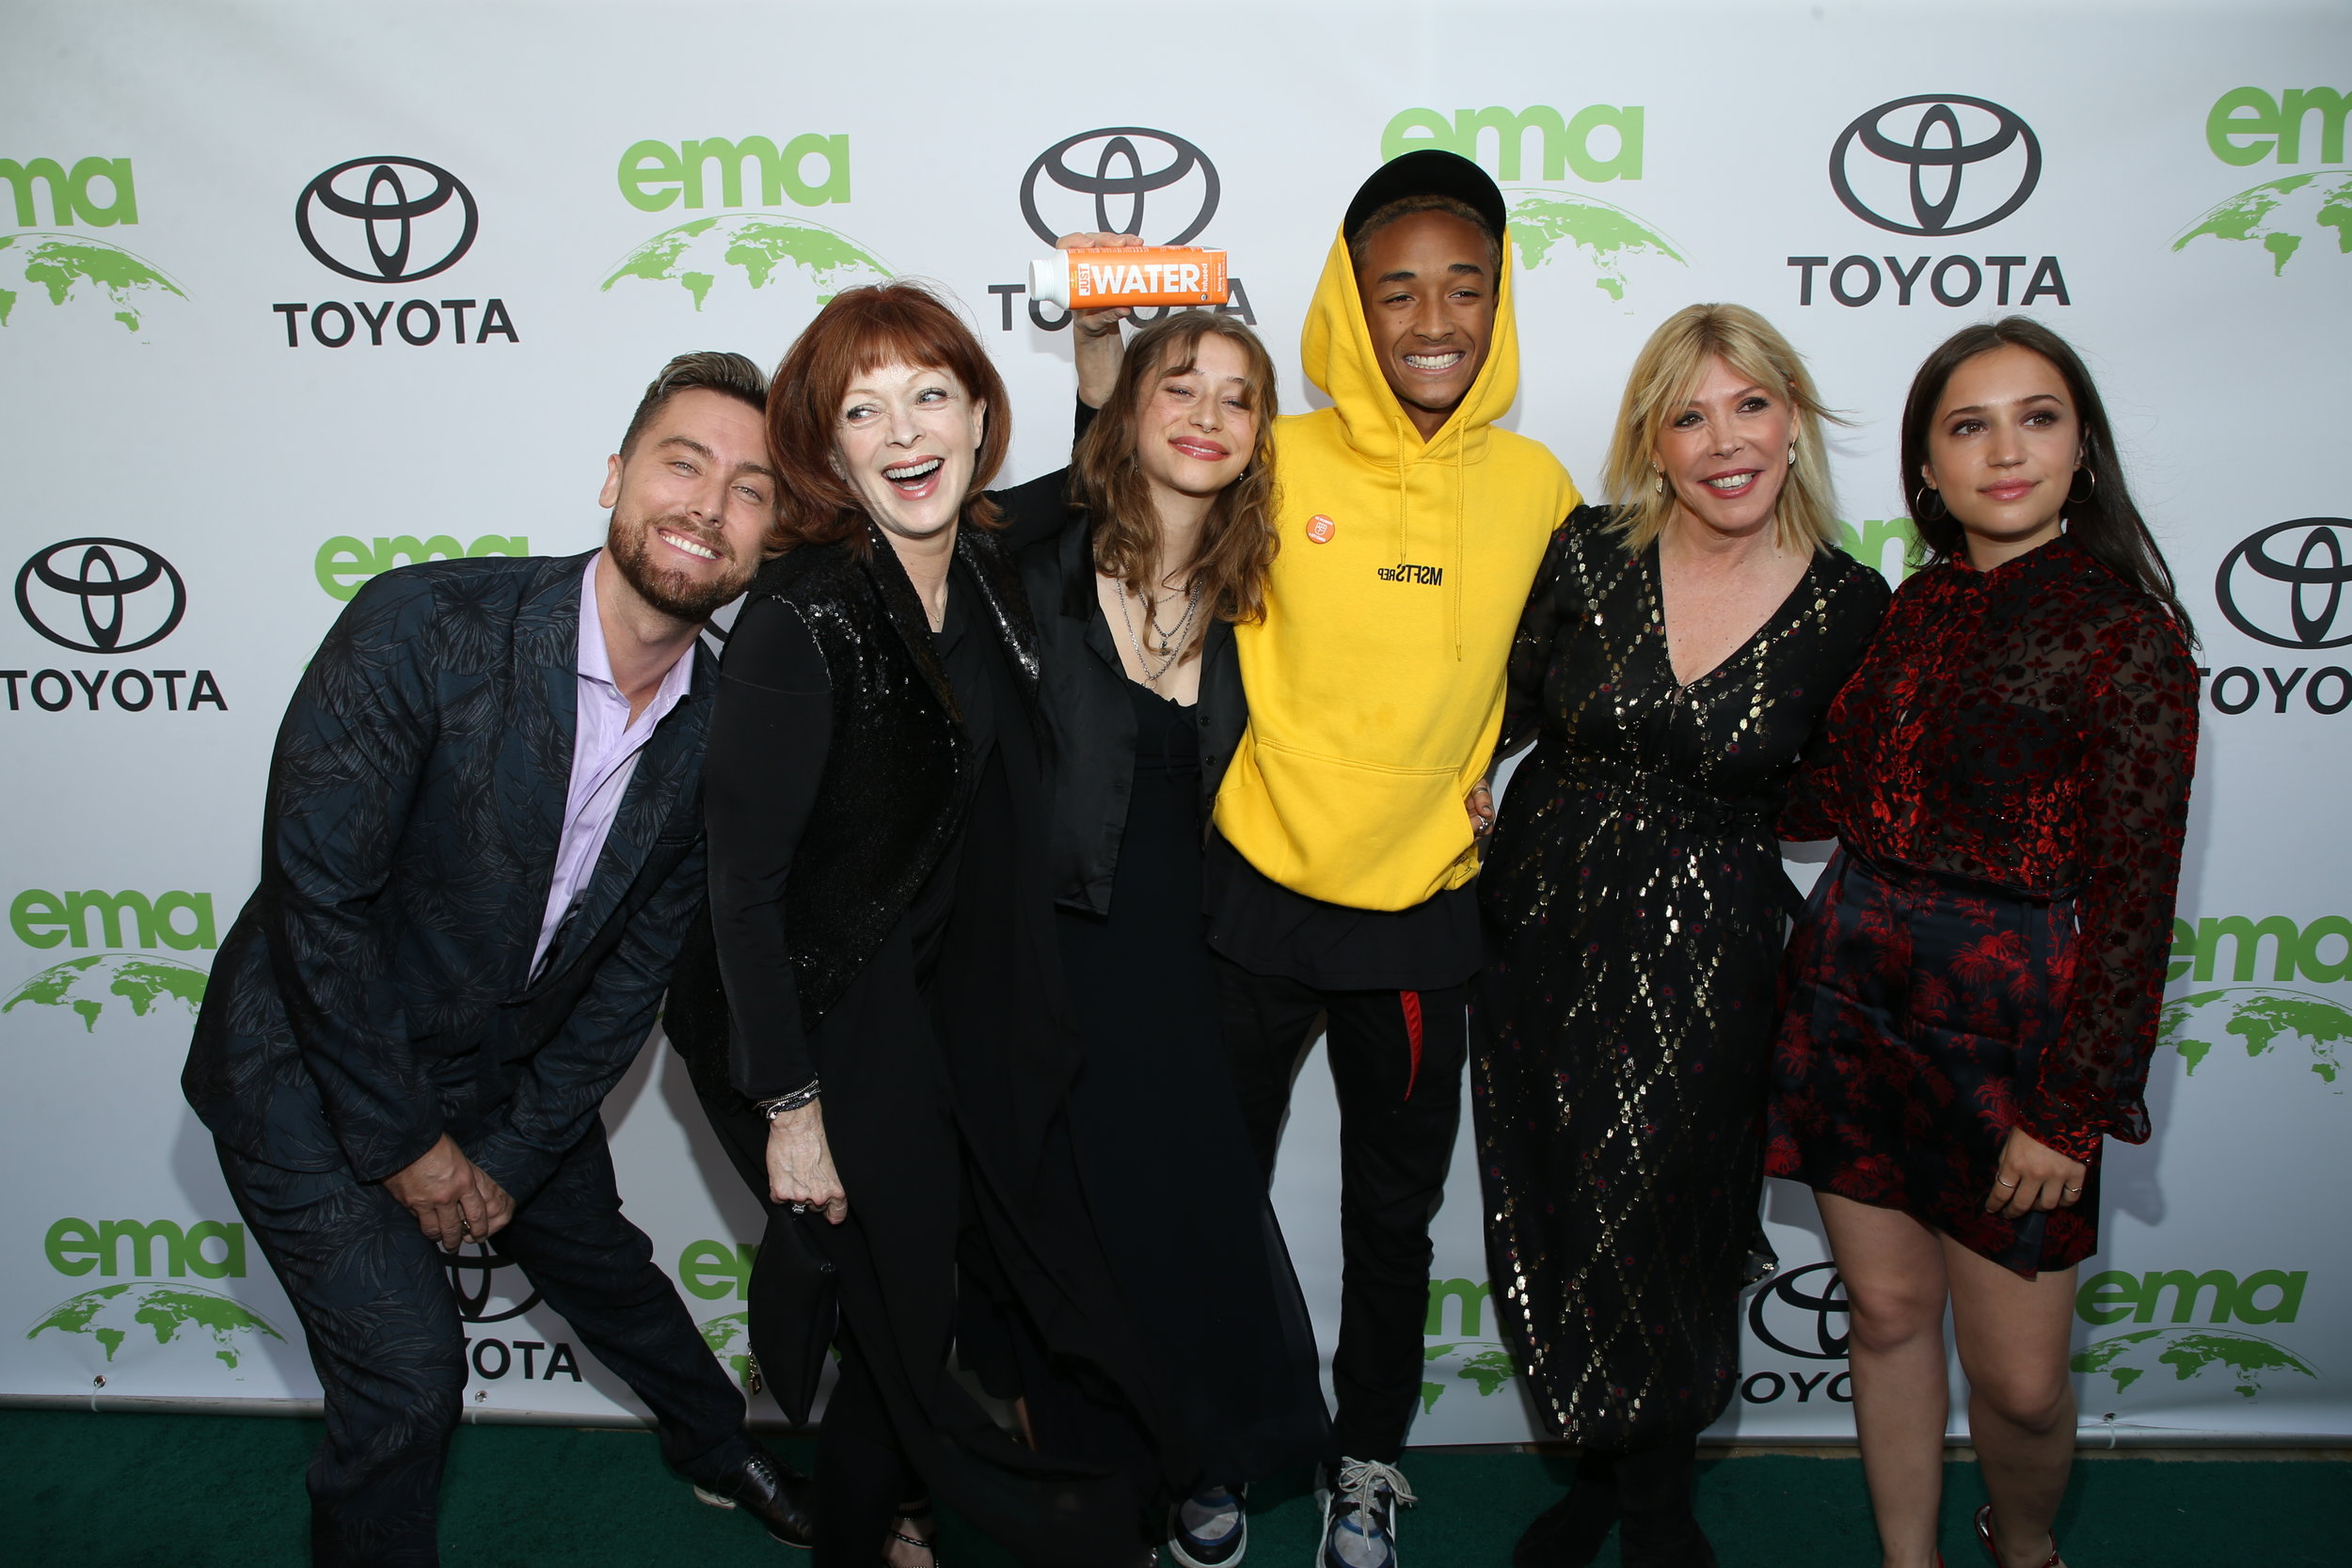 From left to right, Lance Bass, Frances Fisher, Odessa Adlon, Jaden Smith, Debbie Levin and Gideon Adlon. All photographs are courtesy of EMA.